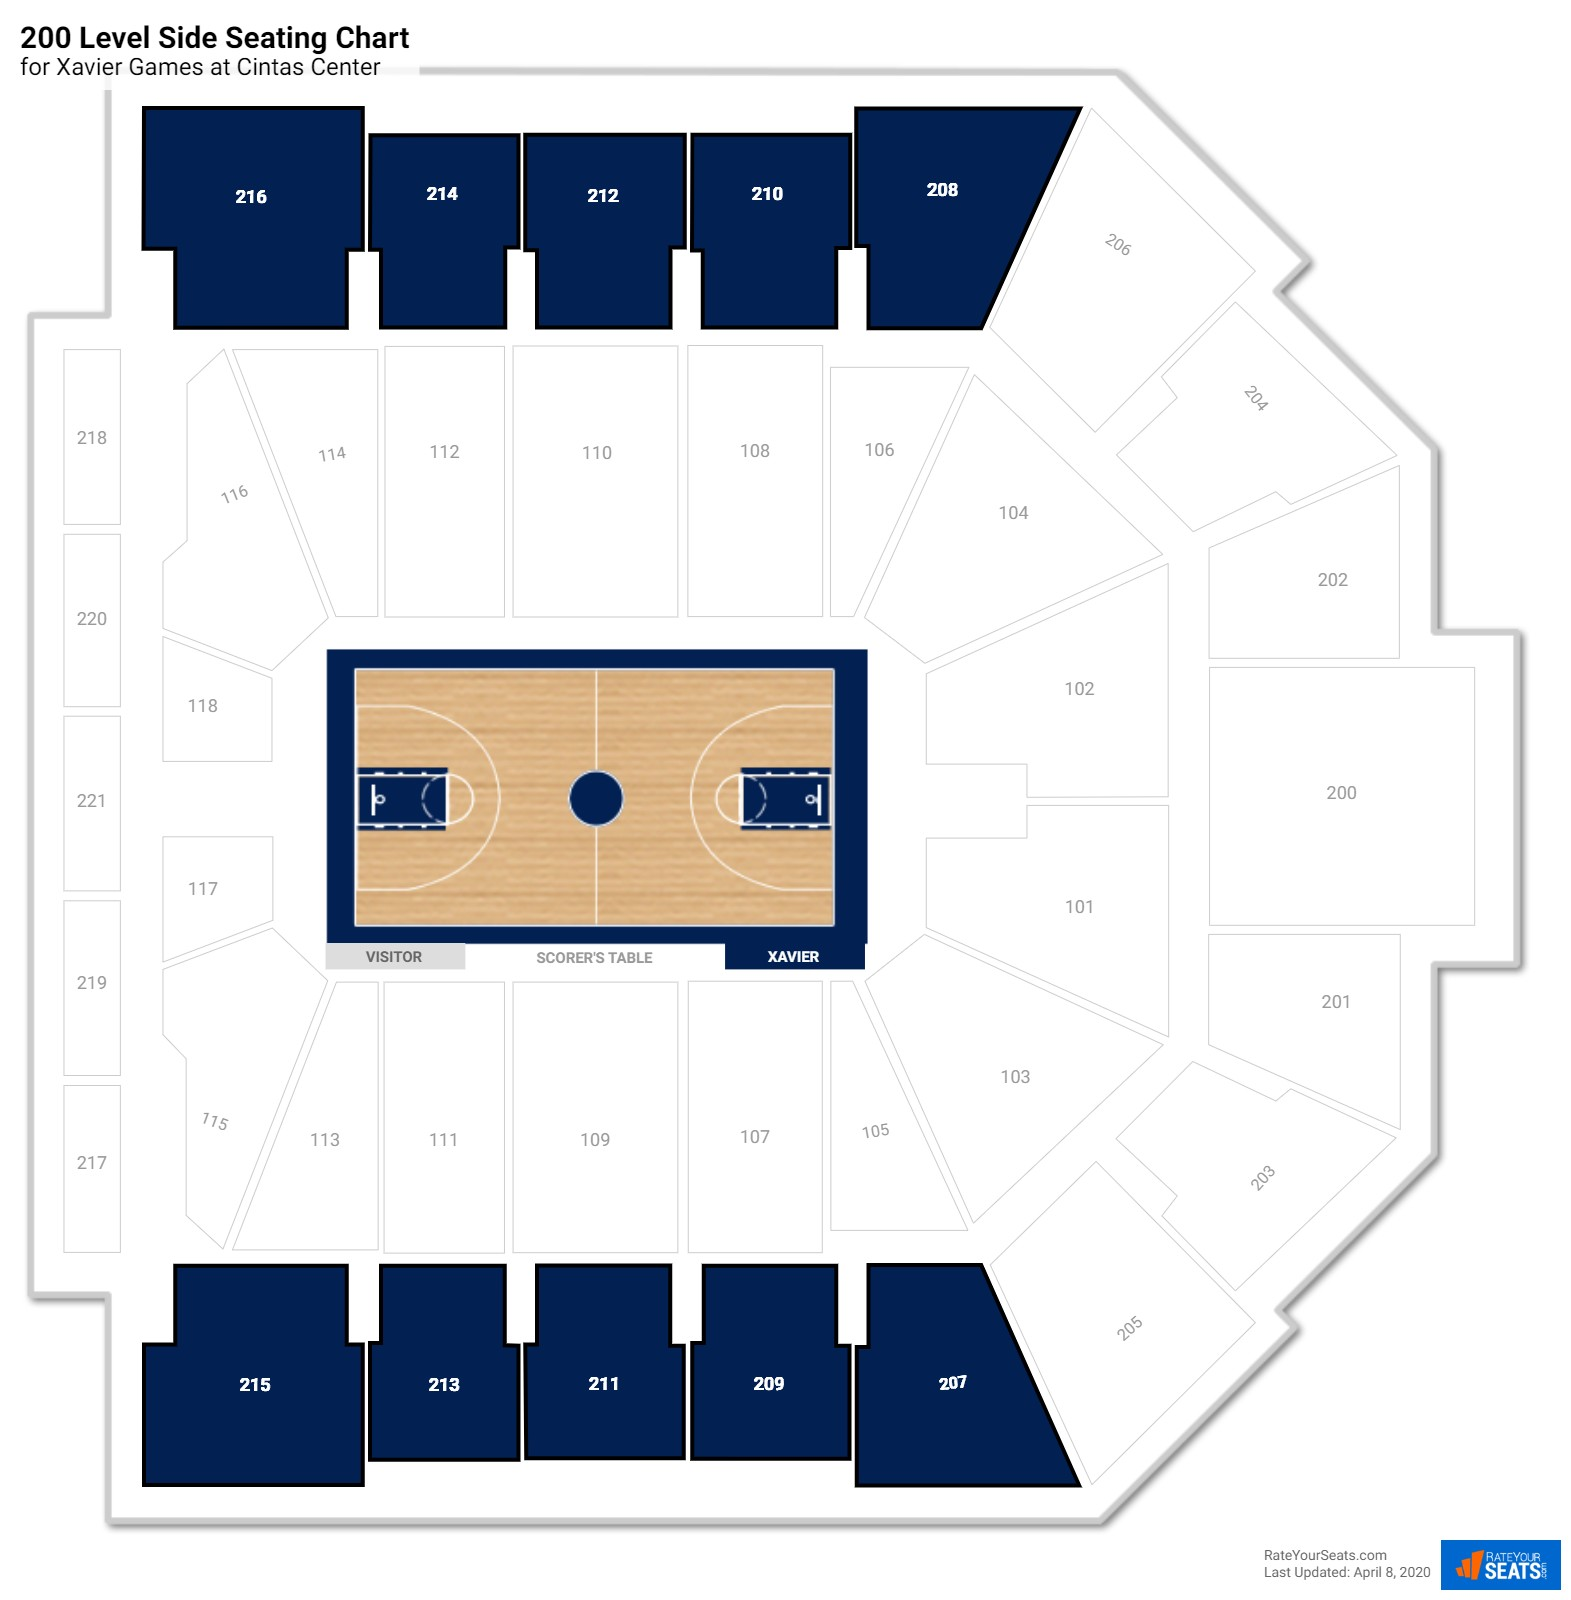 Cintas Center 200 Level Side seating chart